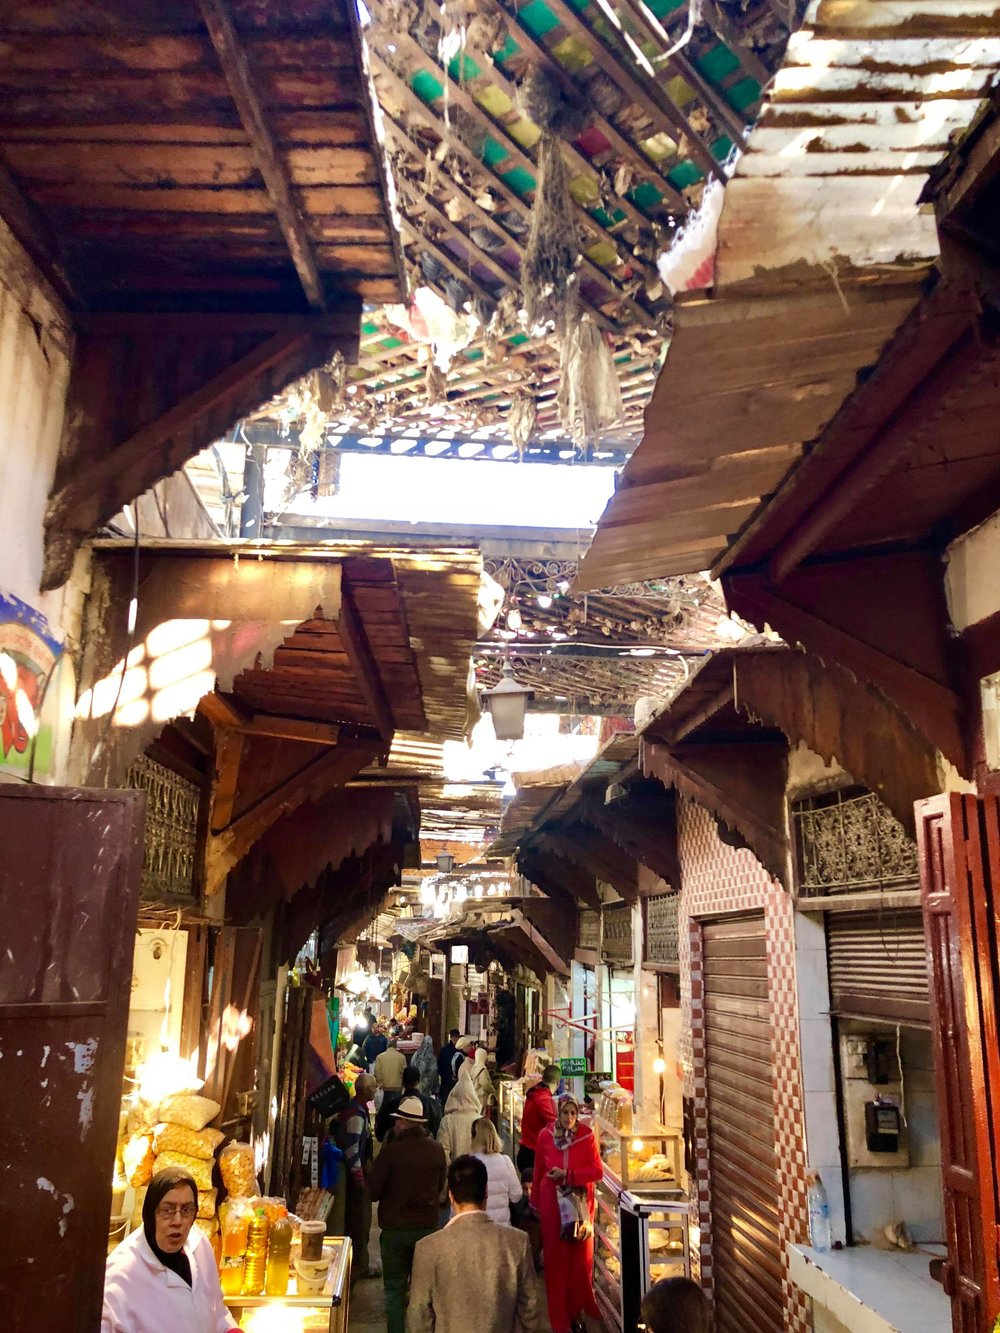 This alleyway seems to be one of Laundromats, whom wash and dry batches of clothing on the streets and inside the courtyards.